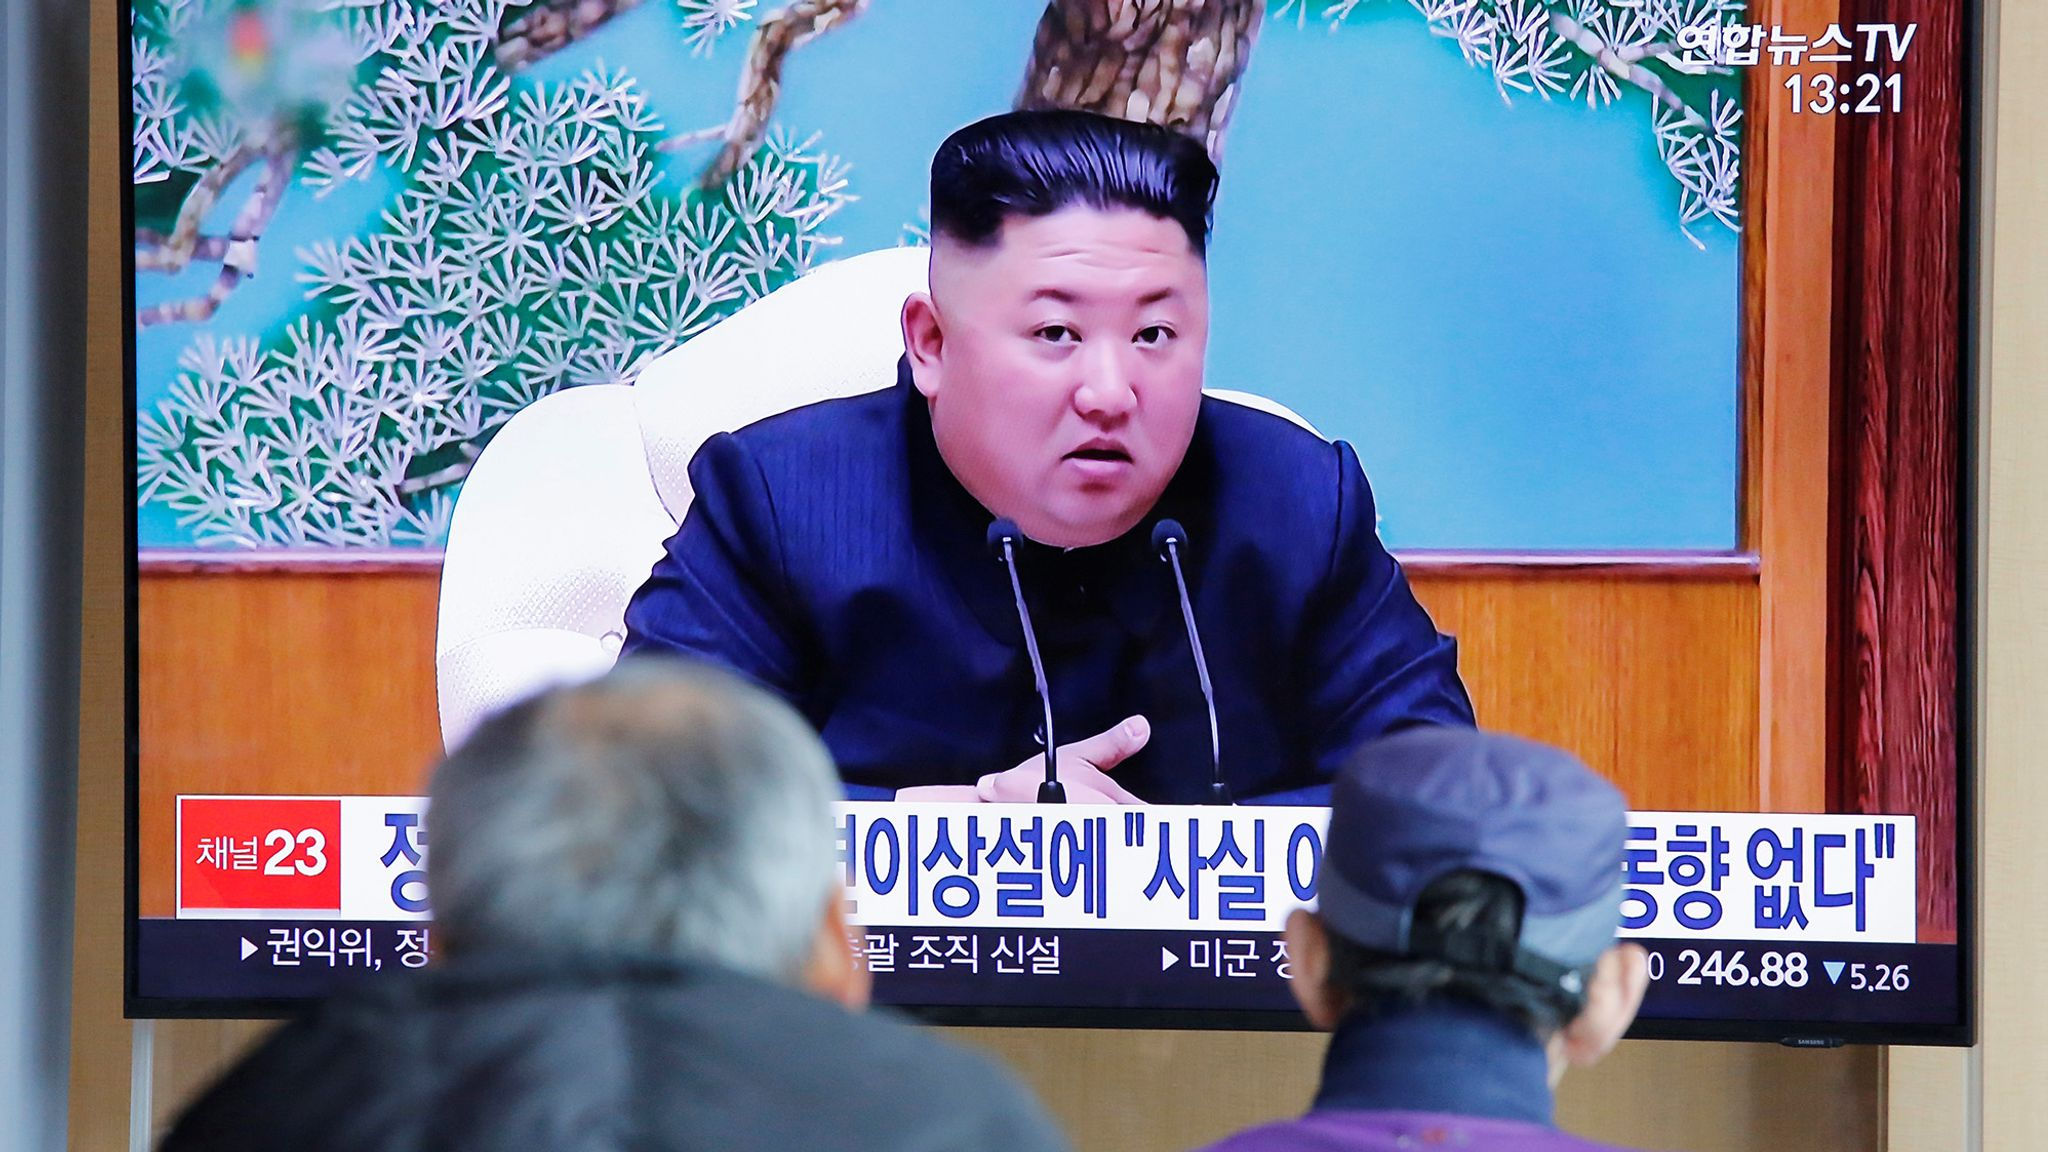 Kim Jong Un Reports North Korean Leader In Grave Danger After Surgery Are Denied World News Sky News